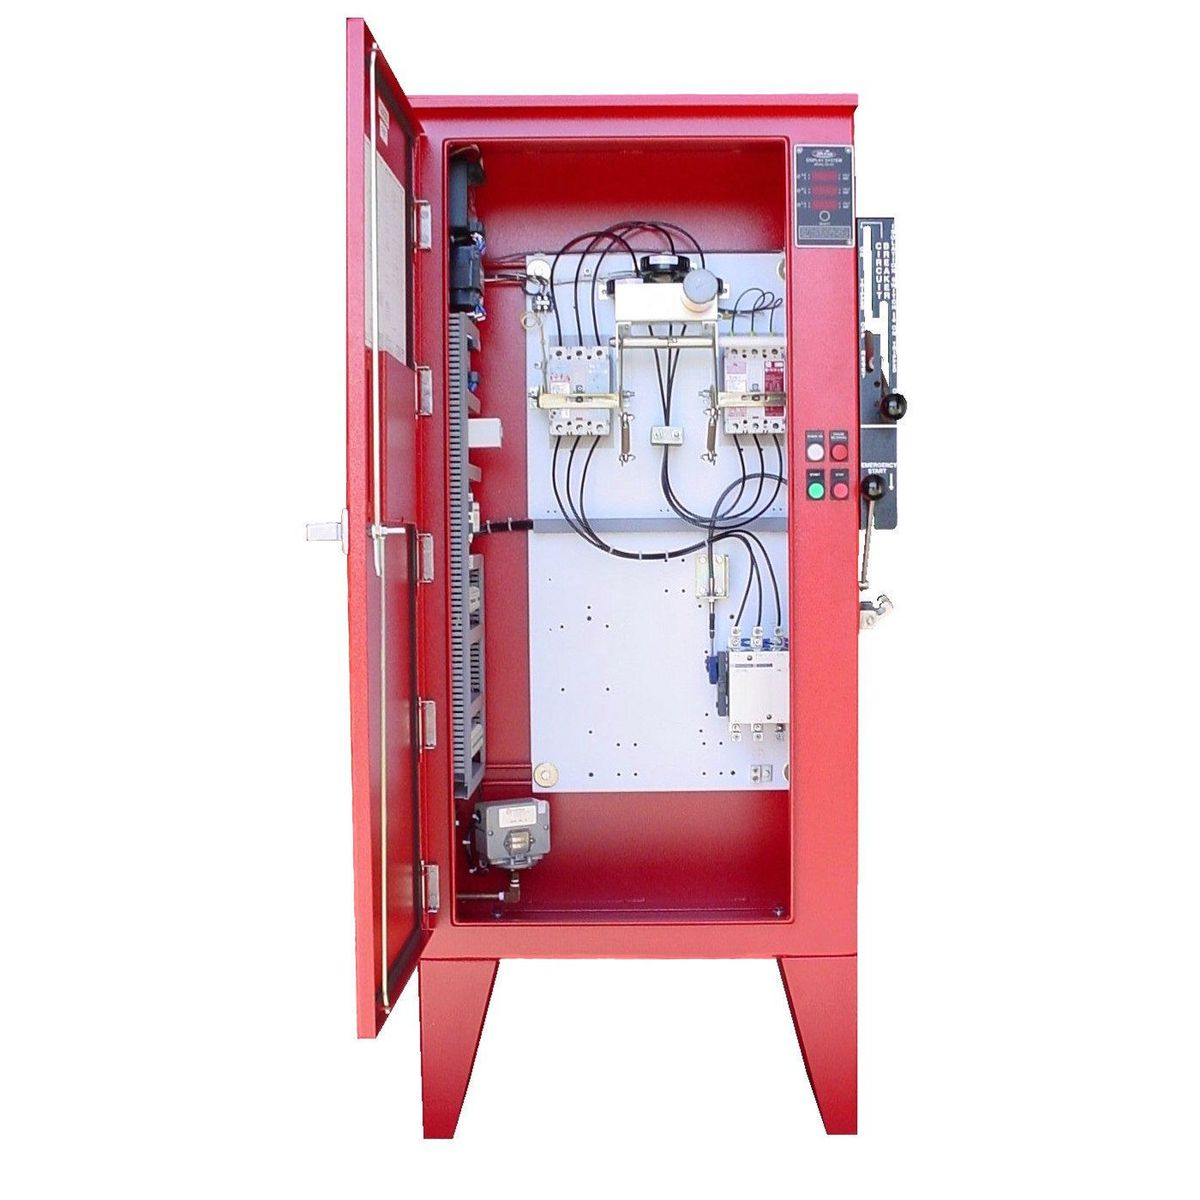 Hcm300 Obsolete Controllers Fire Pump Electrical Transfer Switch Wiring Diagram Metron M300 Closed Prodimage Open